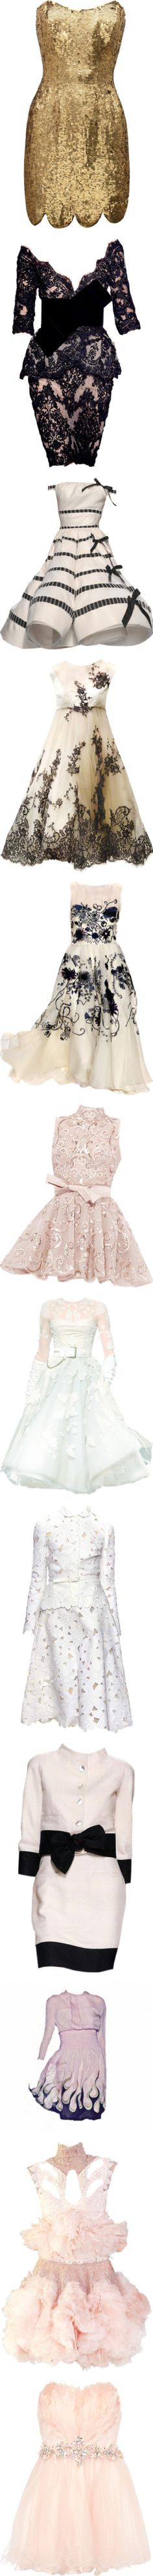 """Ready for the Cocktails"" by linea-prima ❤ liked on Polyvore"